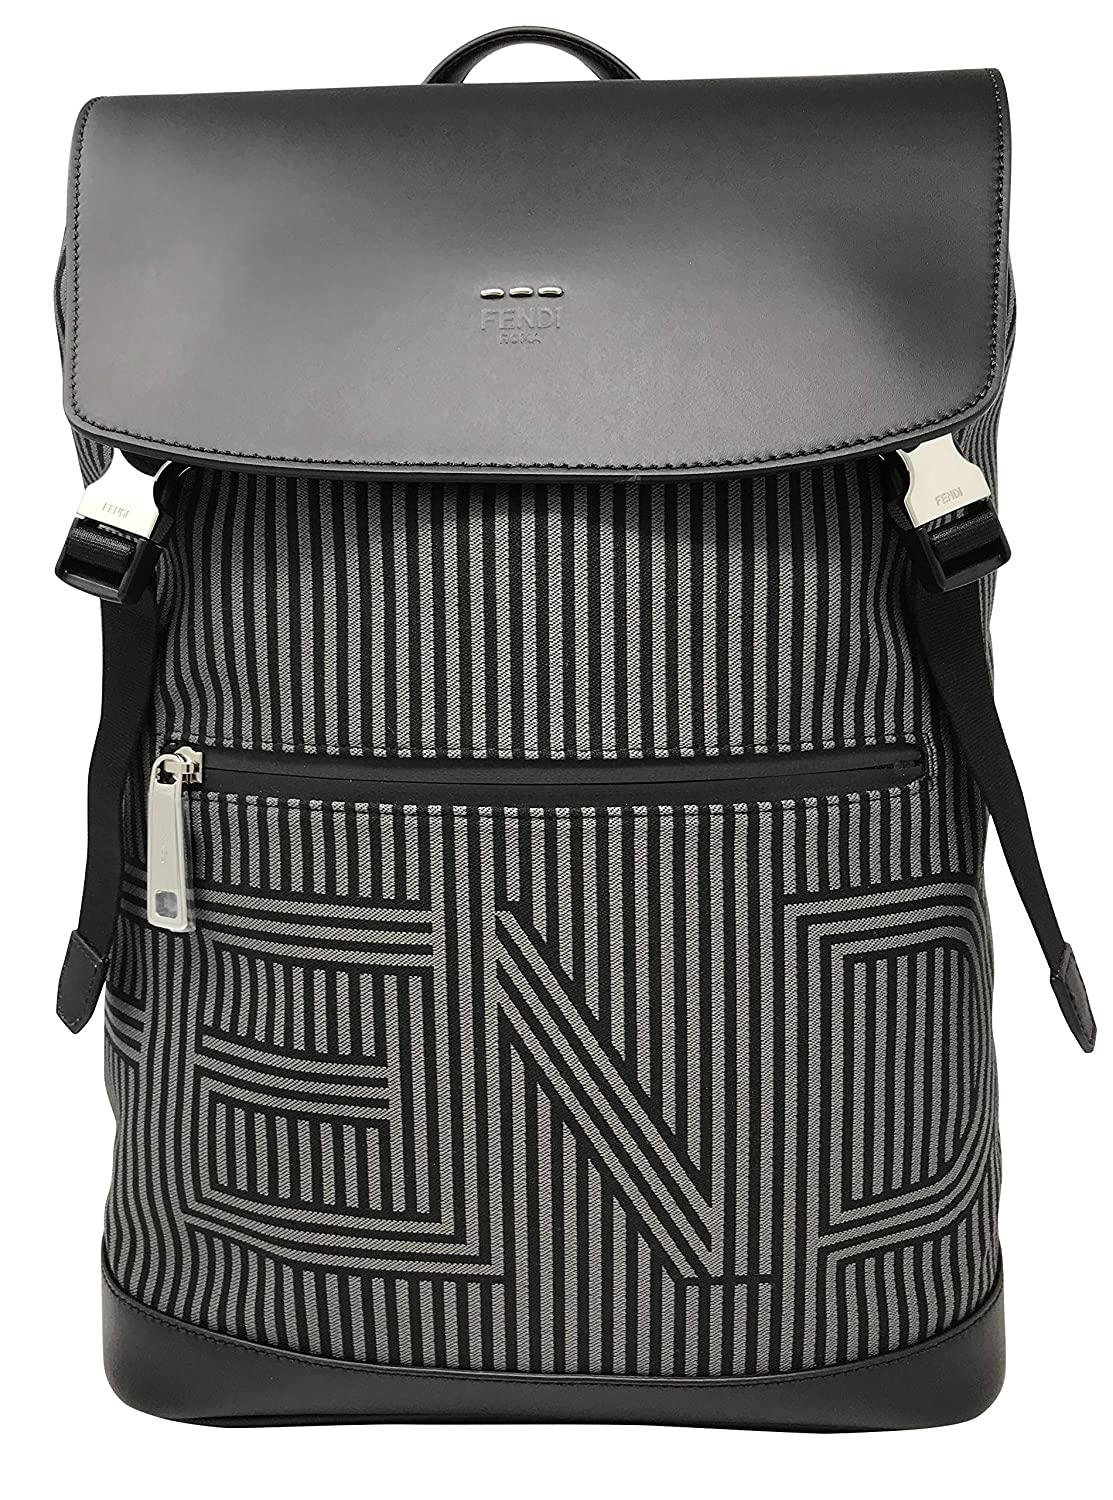 Image of Fendi Men's 7Vz031ommf07al Black Polyamide Backpack Luggage